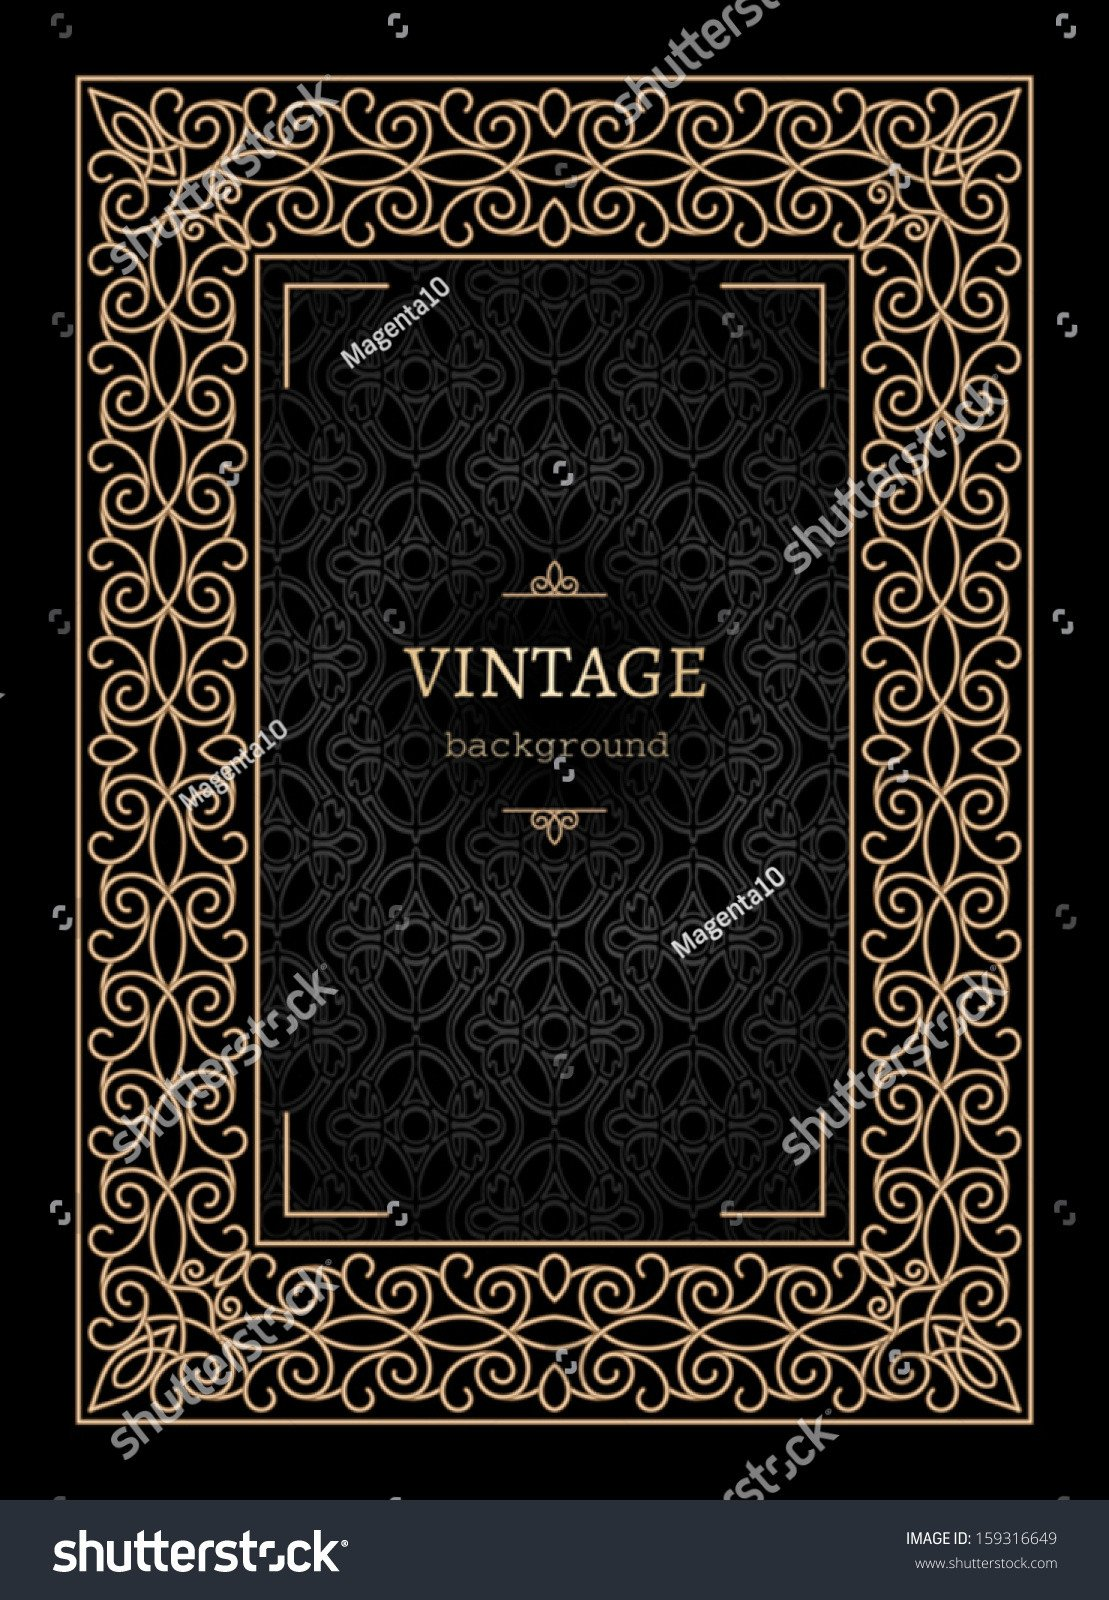 Old Book Cover Template Vintage Gold Background Book Cover Vector ornamental